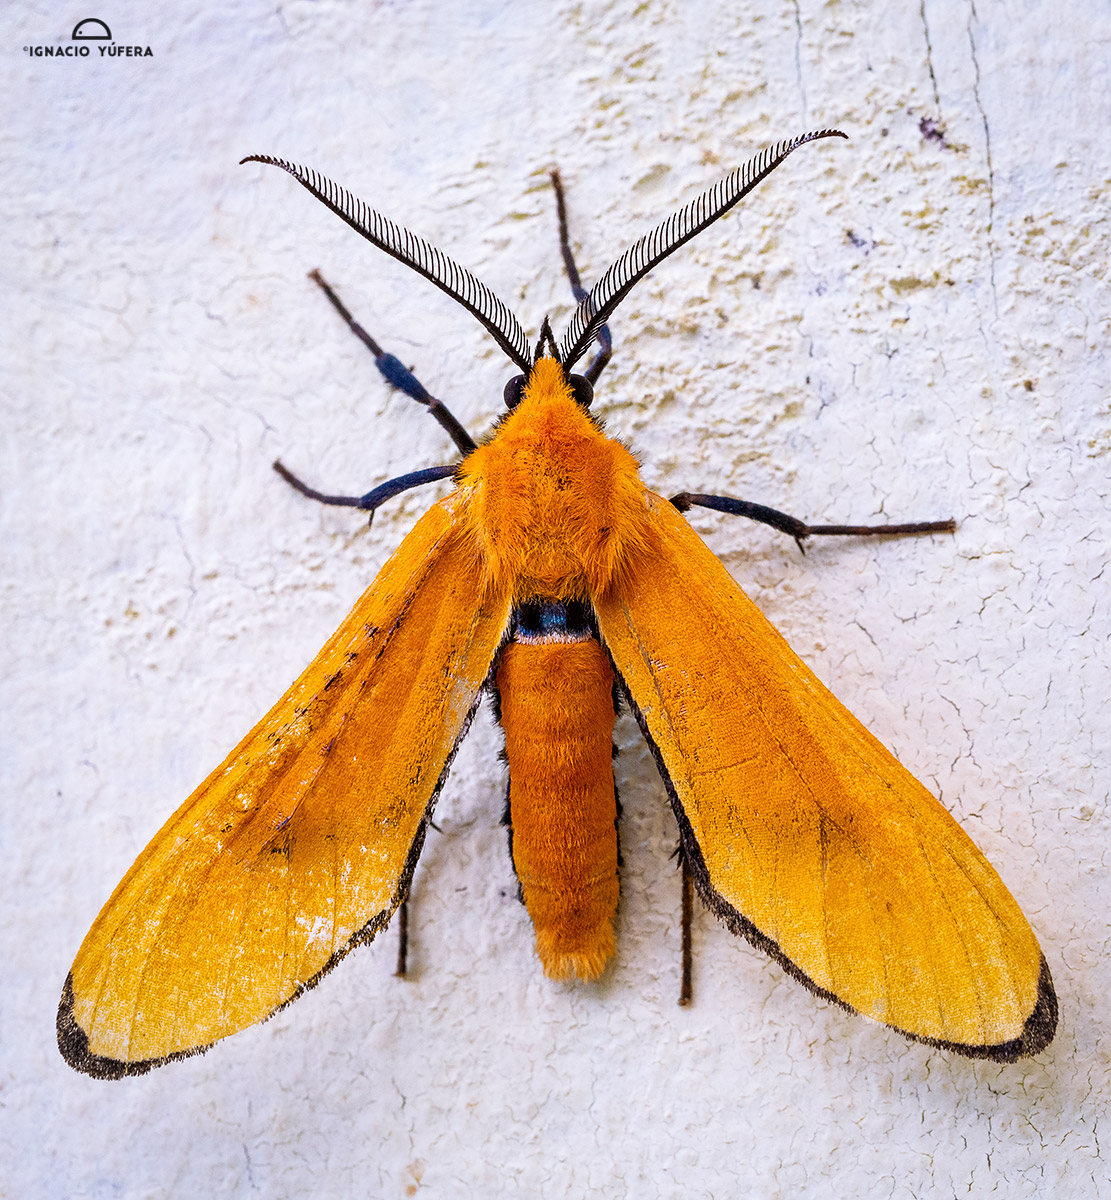 Orange moth (fam. Erebidae), Mount Totumas, Panama, June